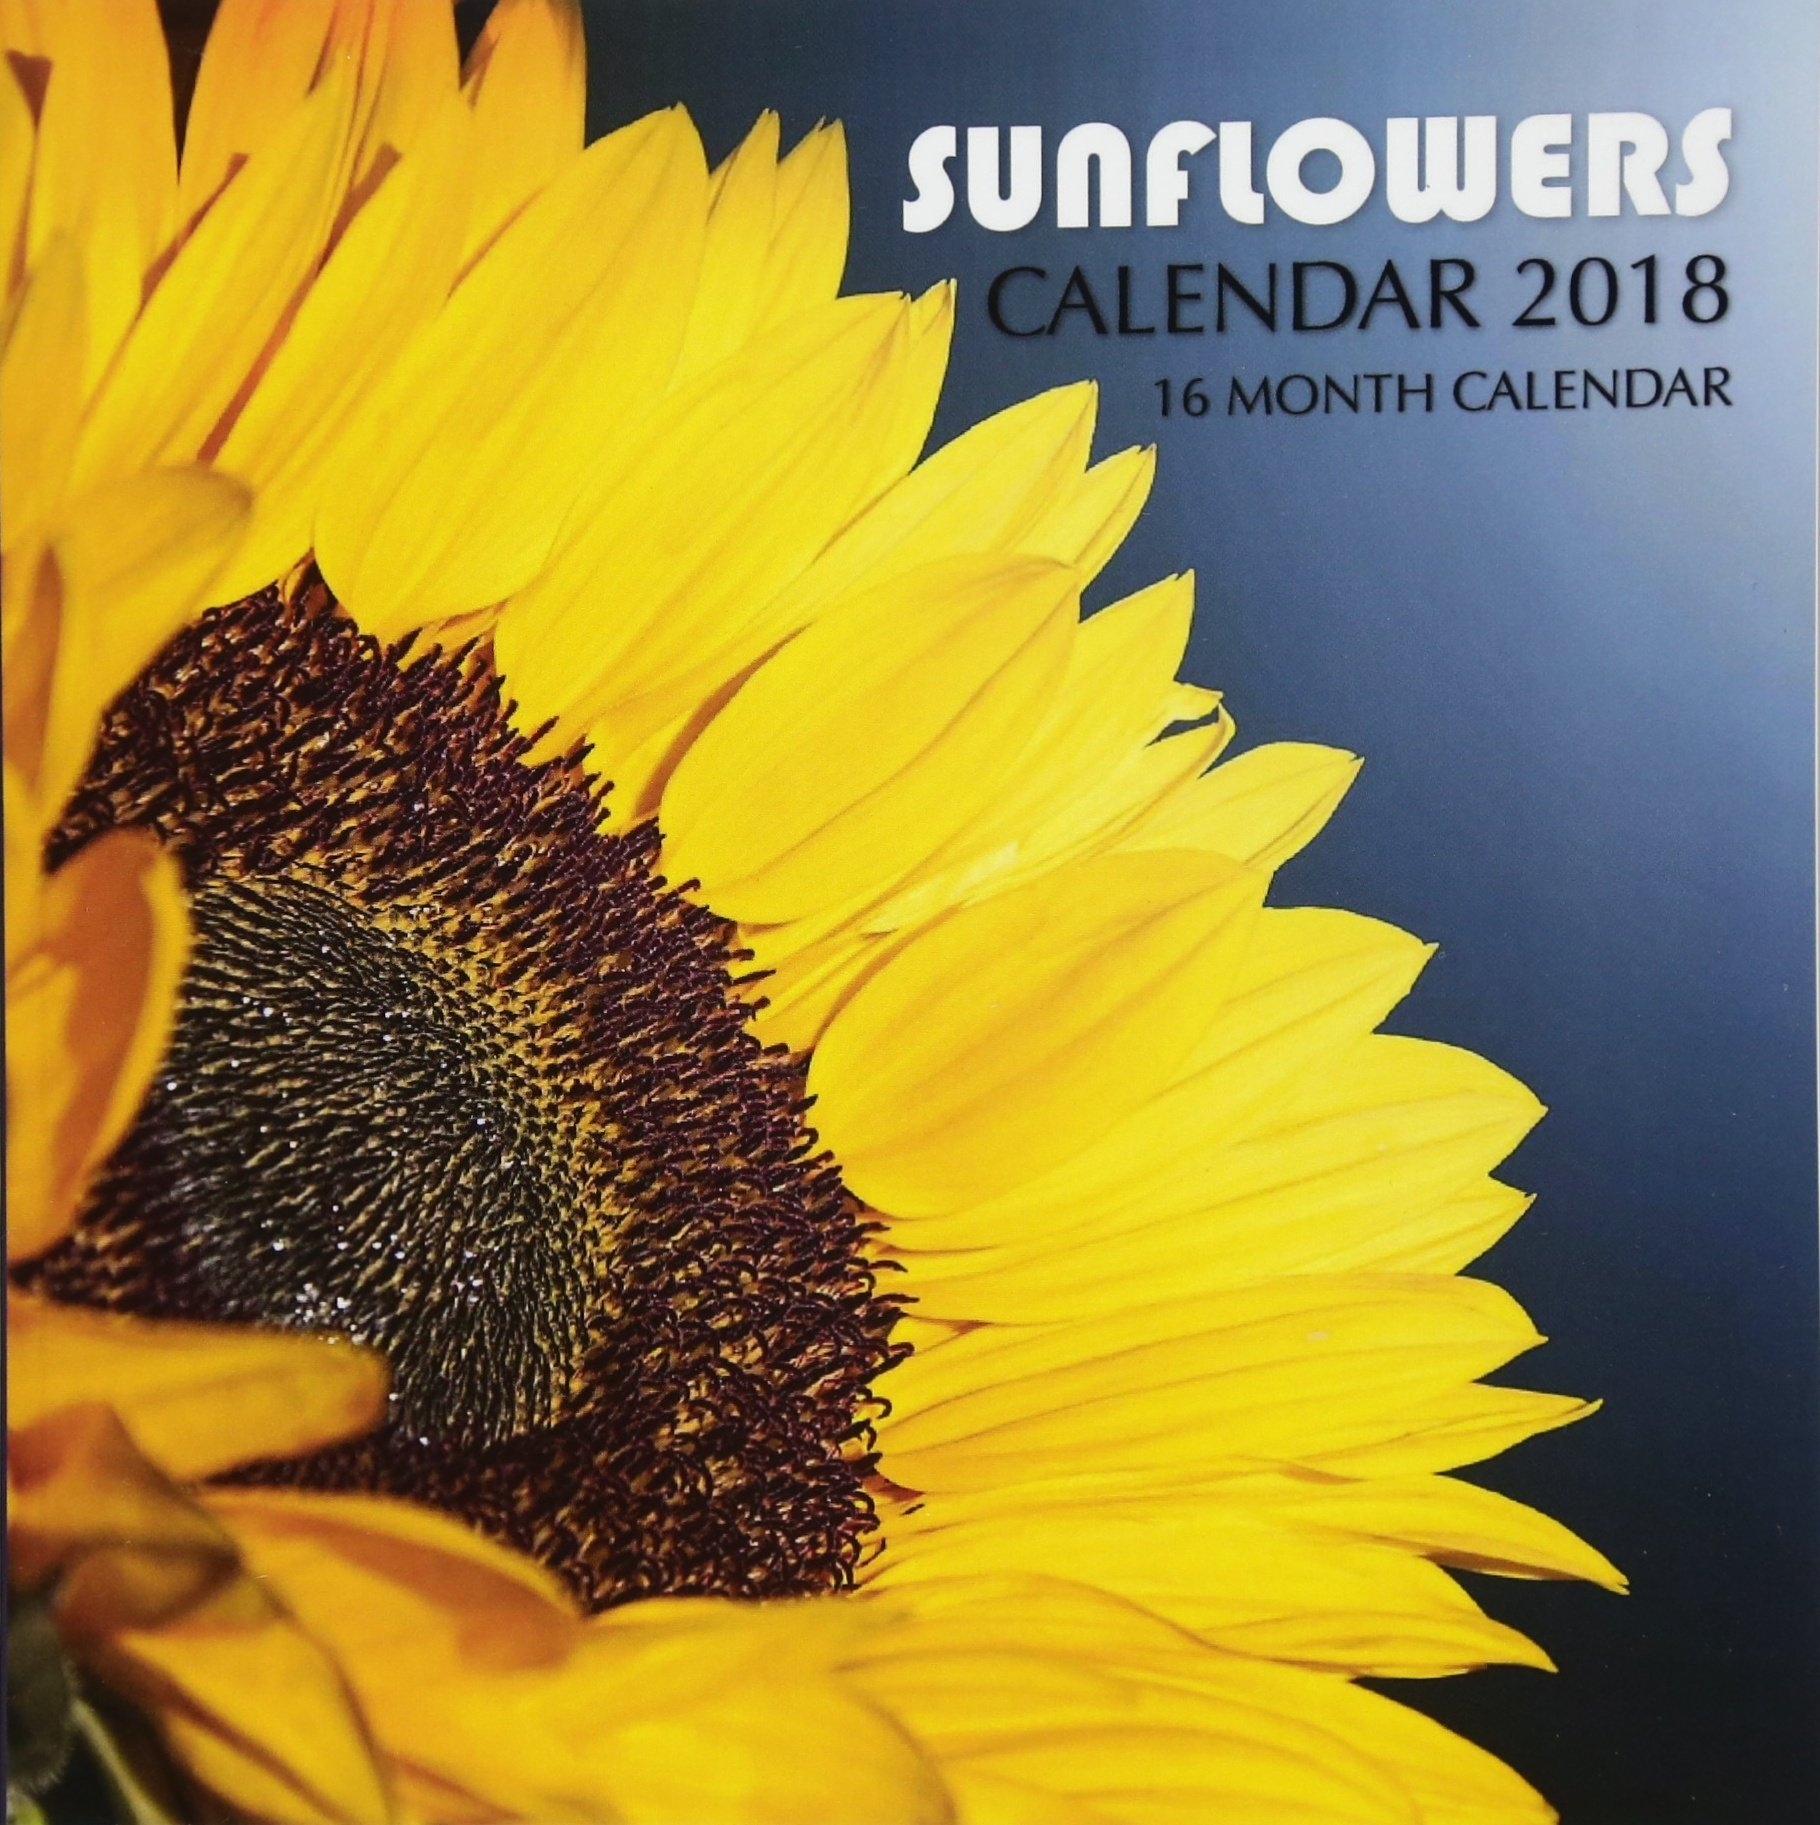 Sunflowers Calendar 2018: 16 Month Calendar pdf epub